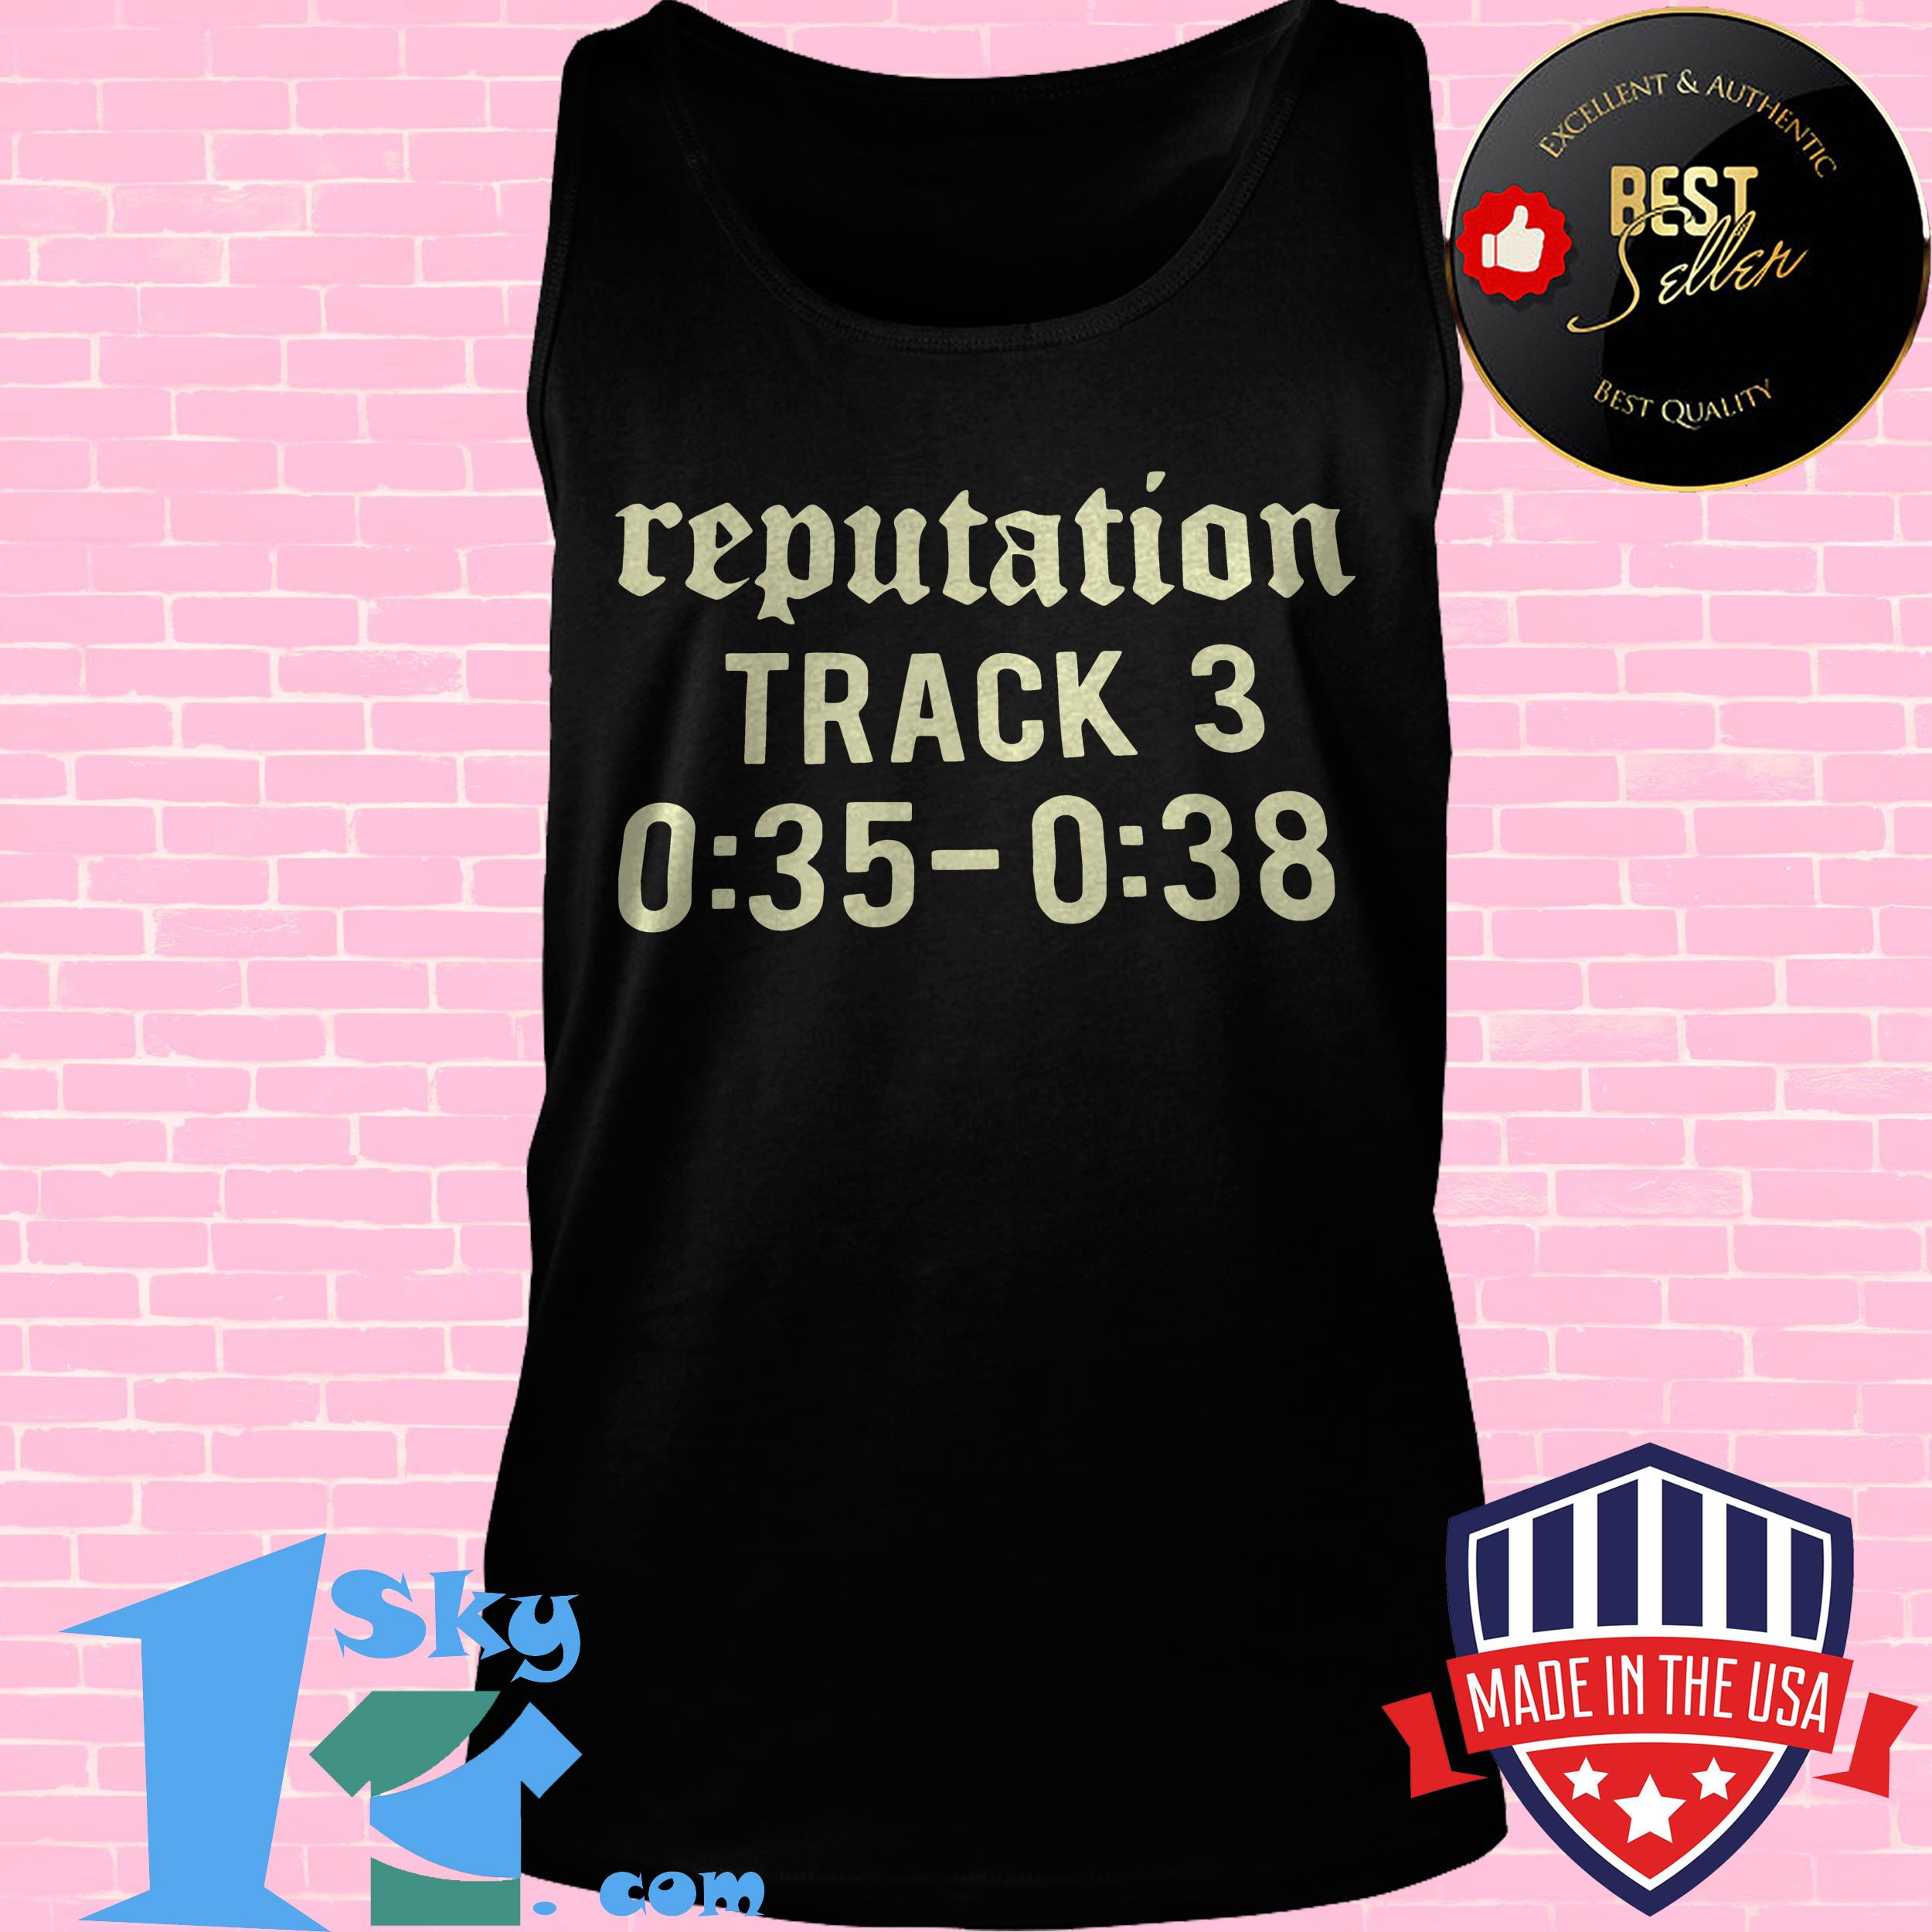 official reputation track 3 035 038 tank top - Official Reputation Track 3 0:35-0:38 shirt